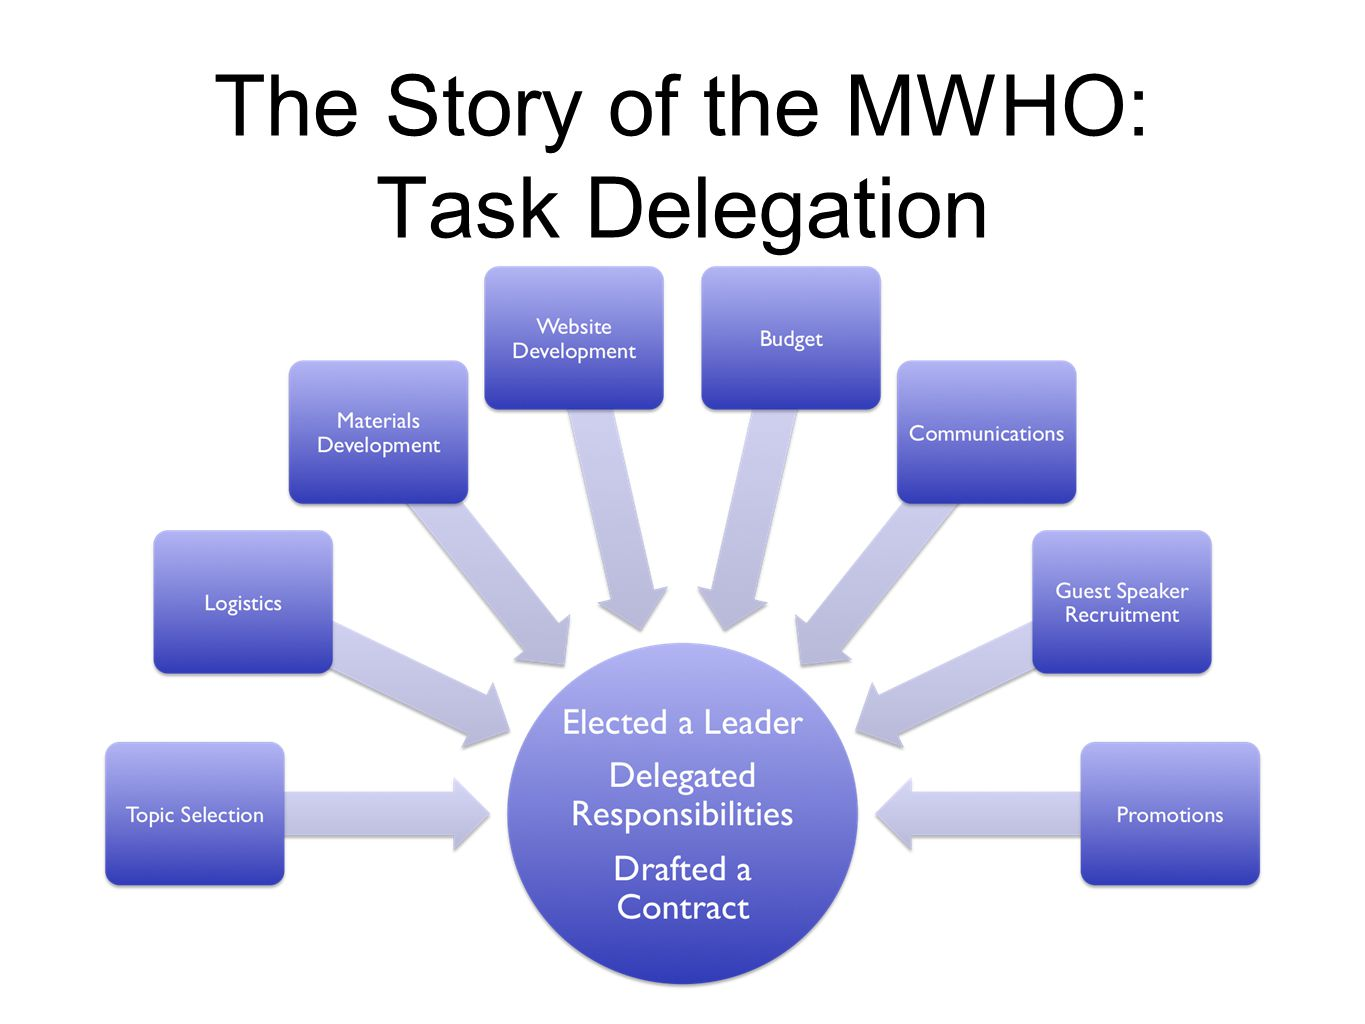 The Story of the MWHO: Task Delegation